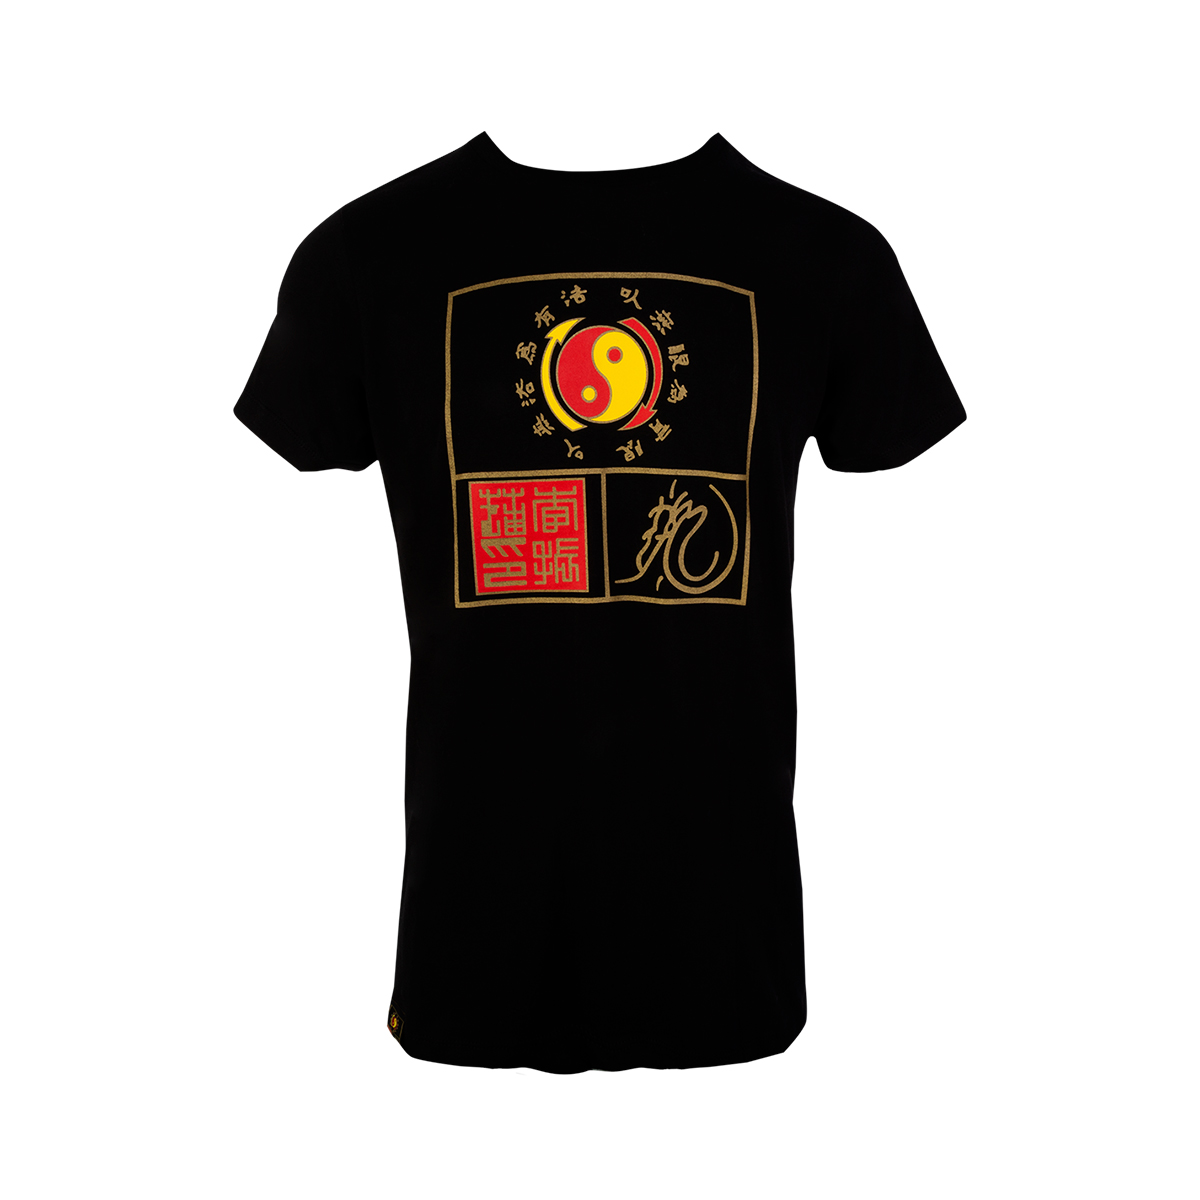 Jun Fan Jeet Kune Do T-shirt